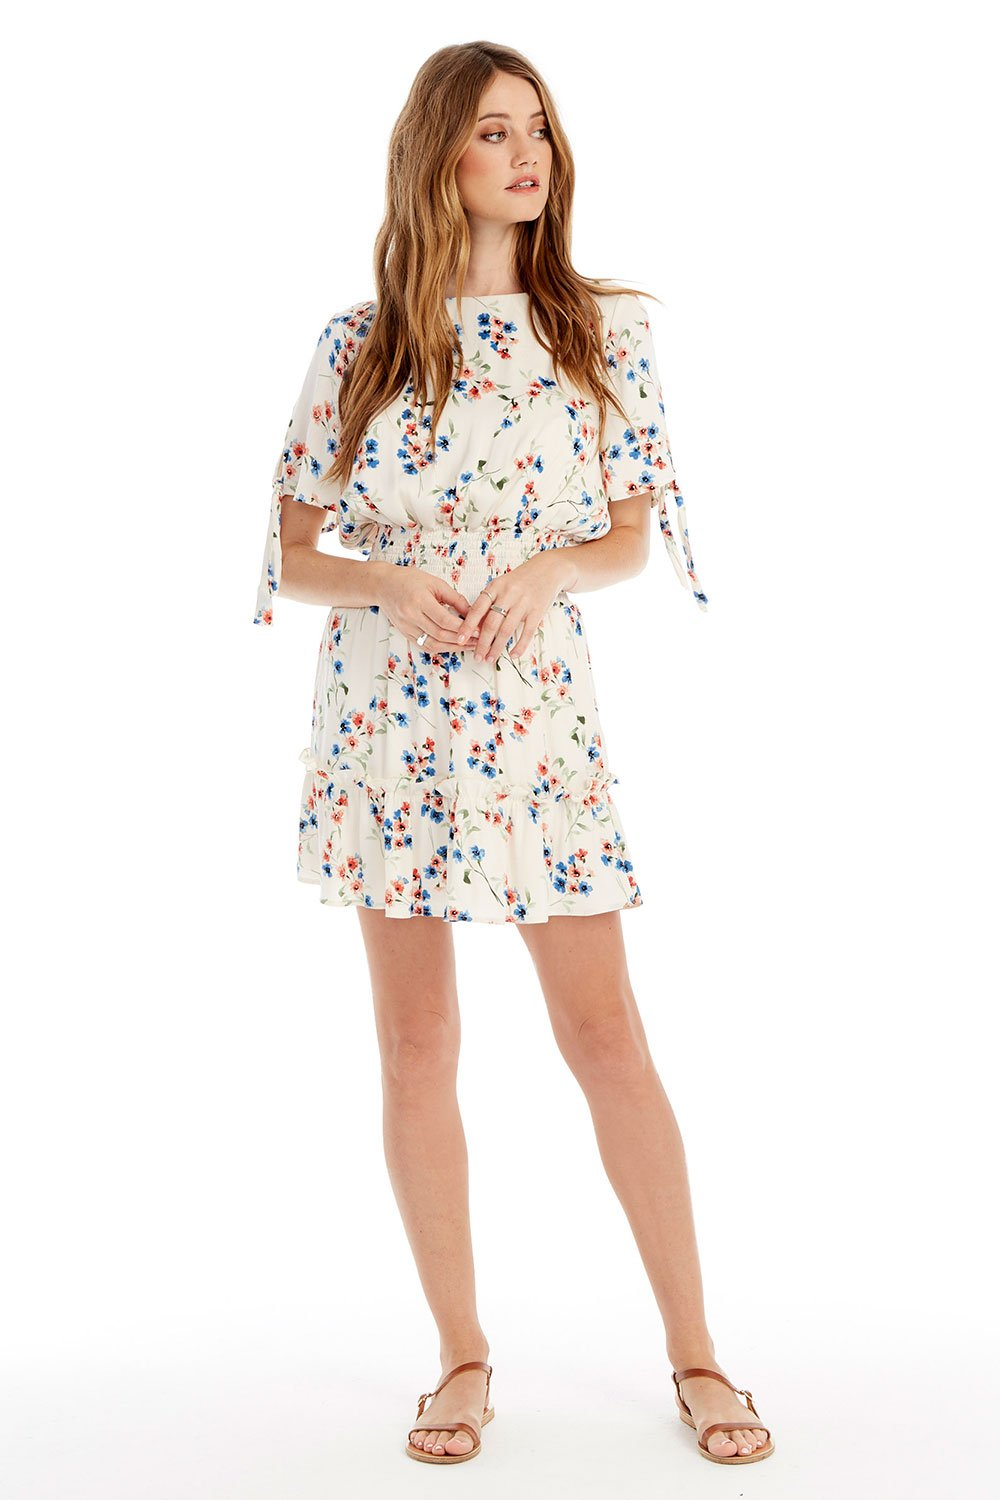 Newport Mini Dress